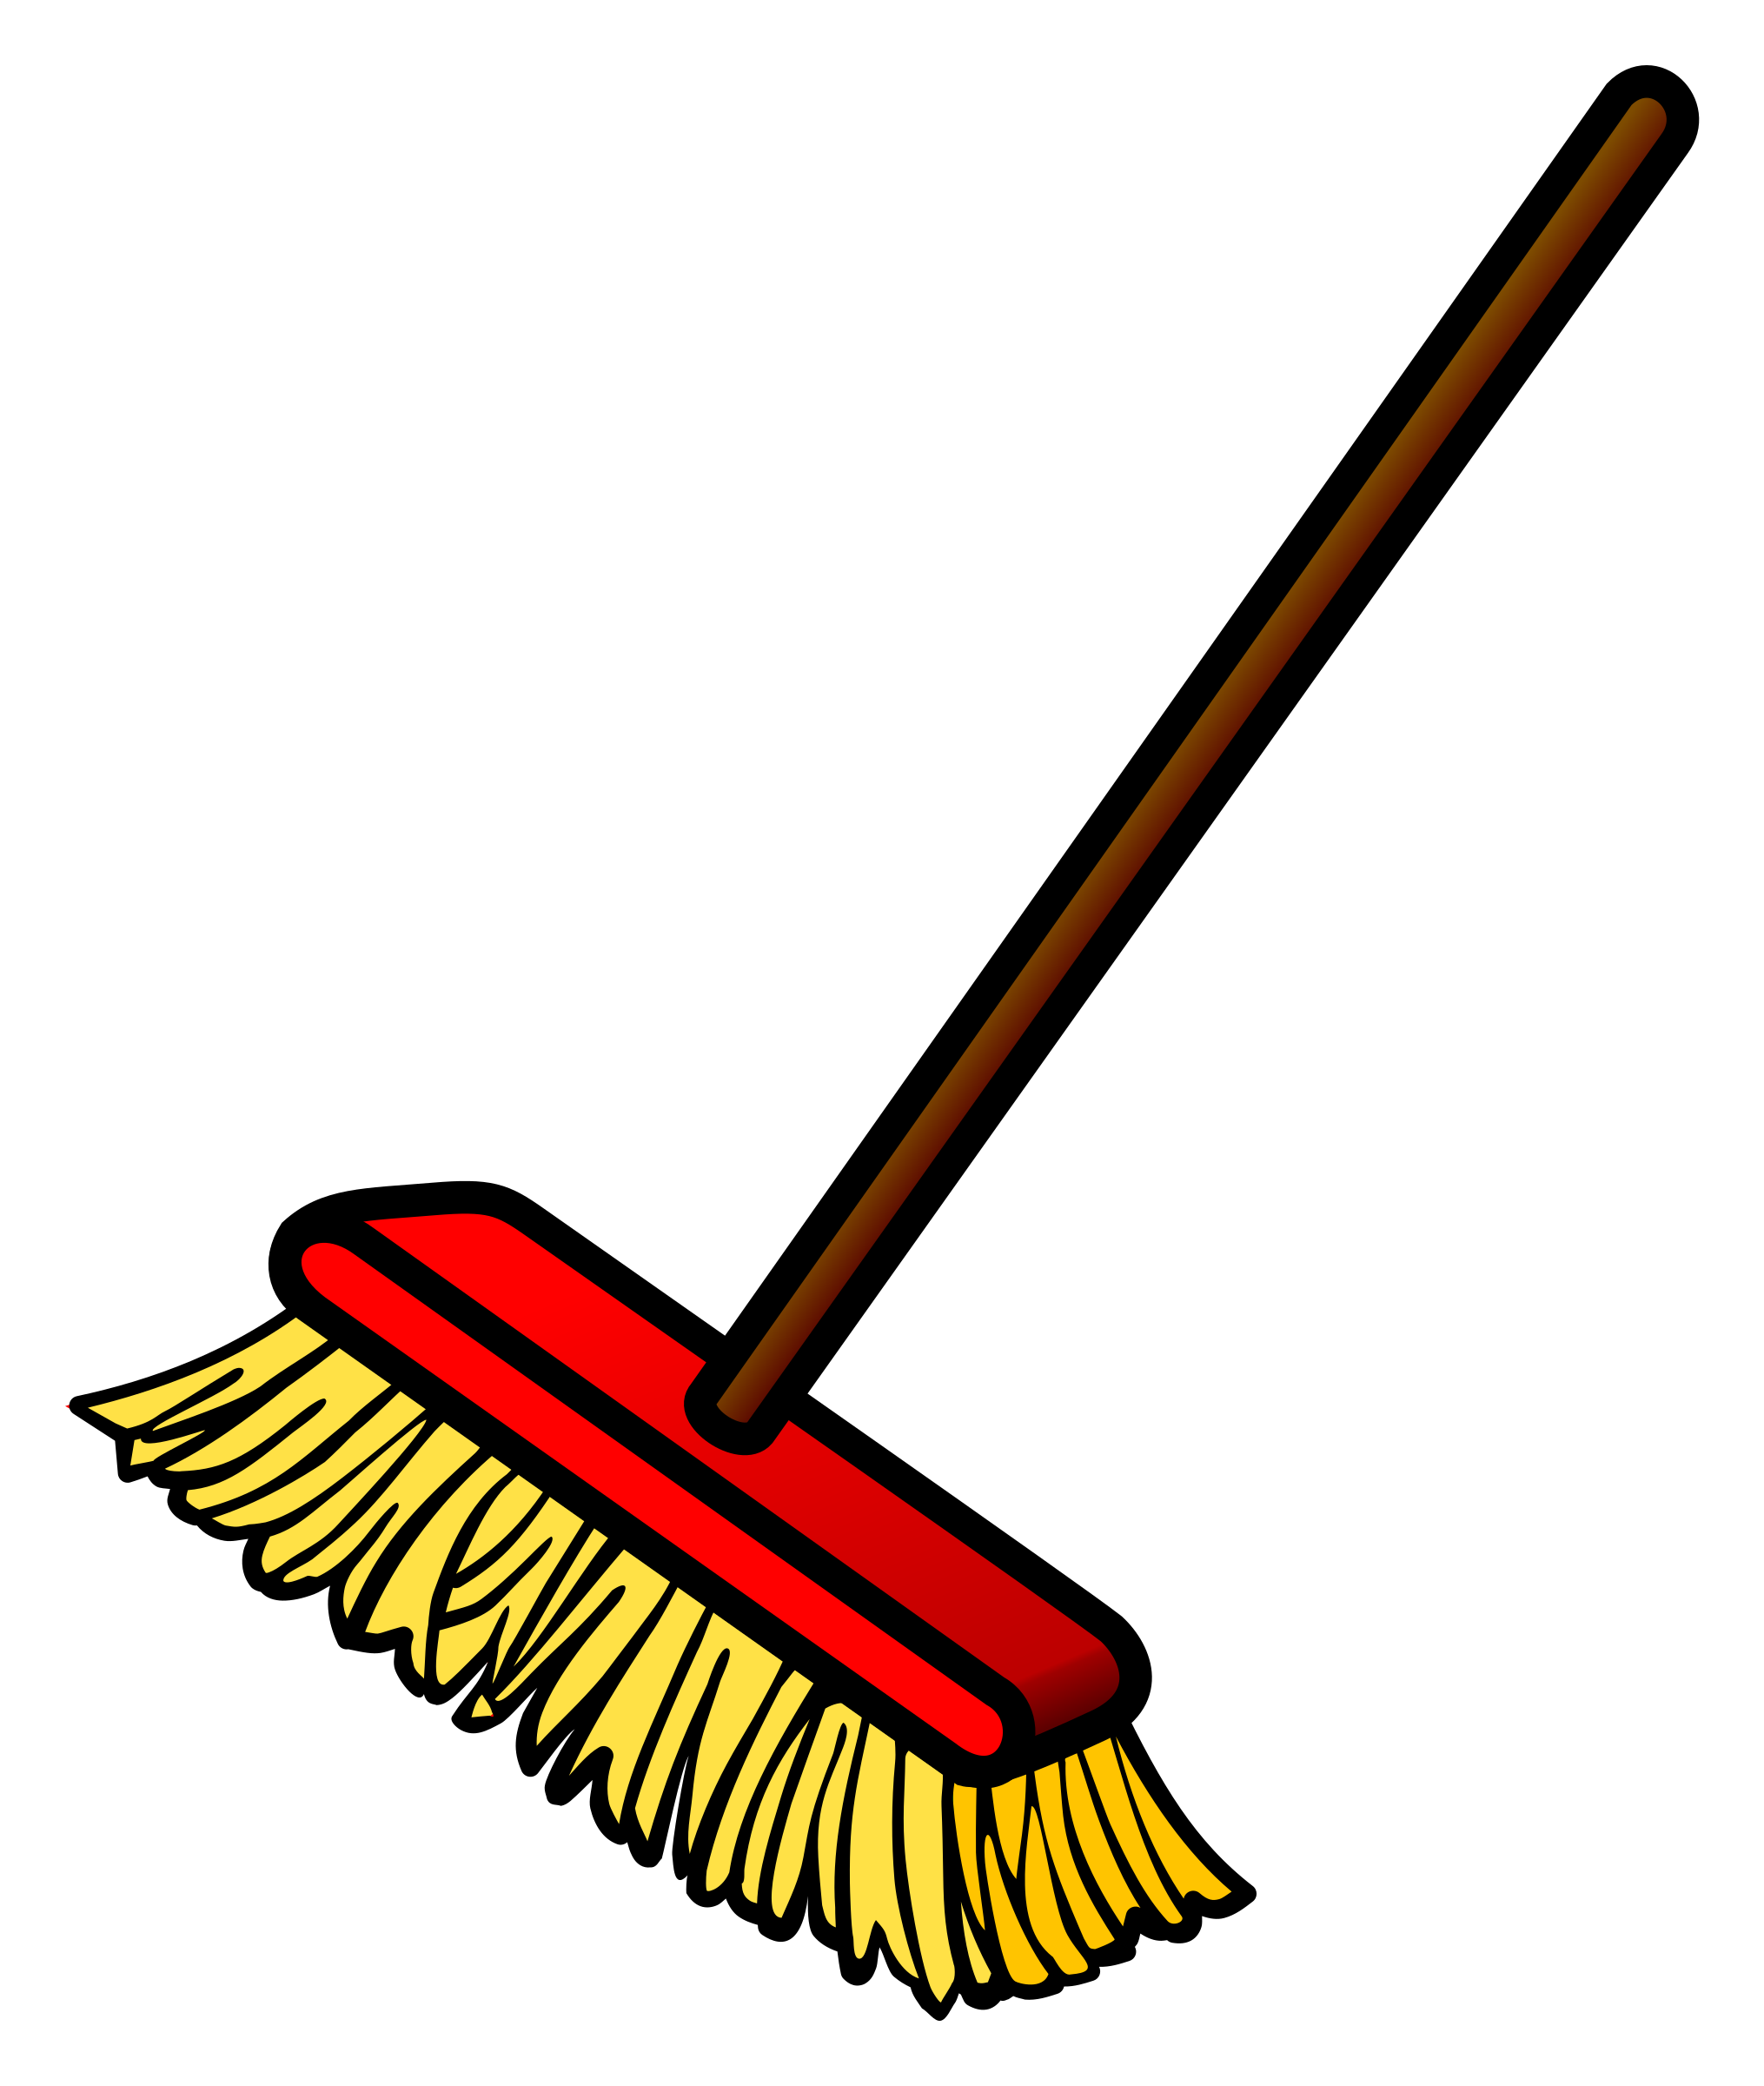 Broom clipart sweeping broom. Coloured icons png free